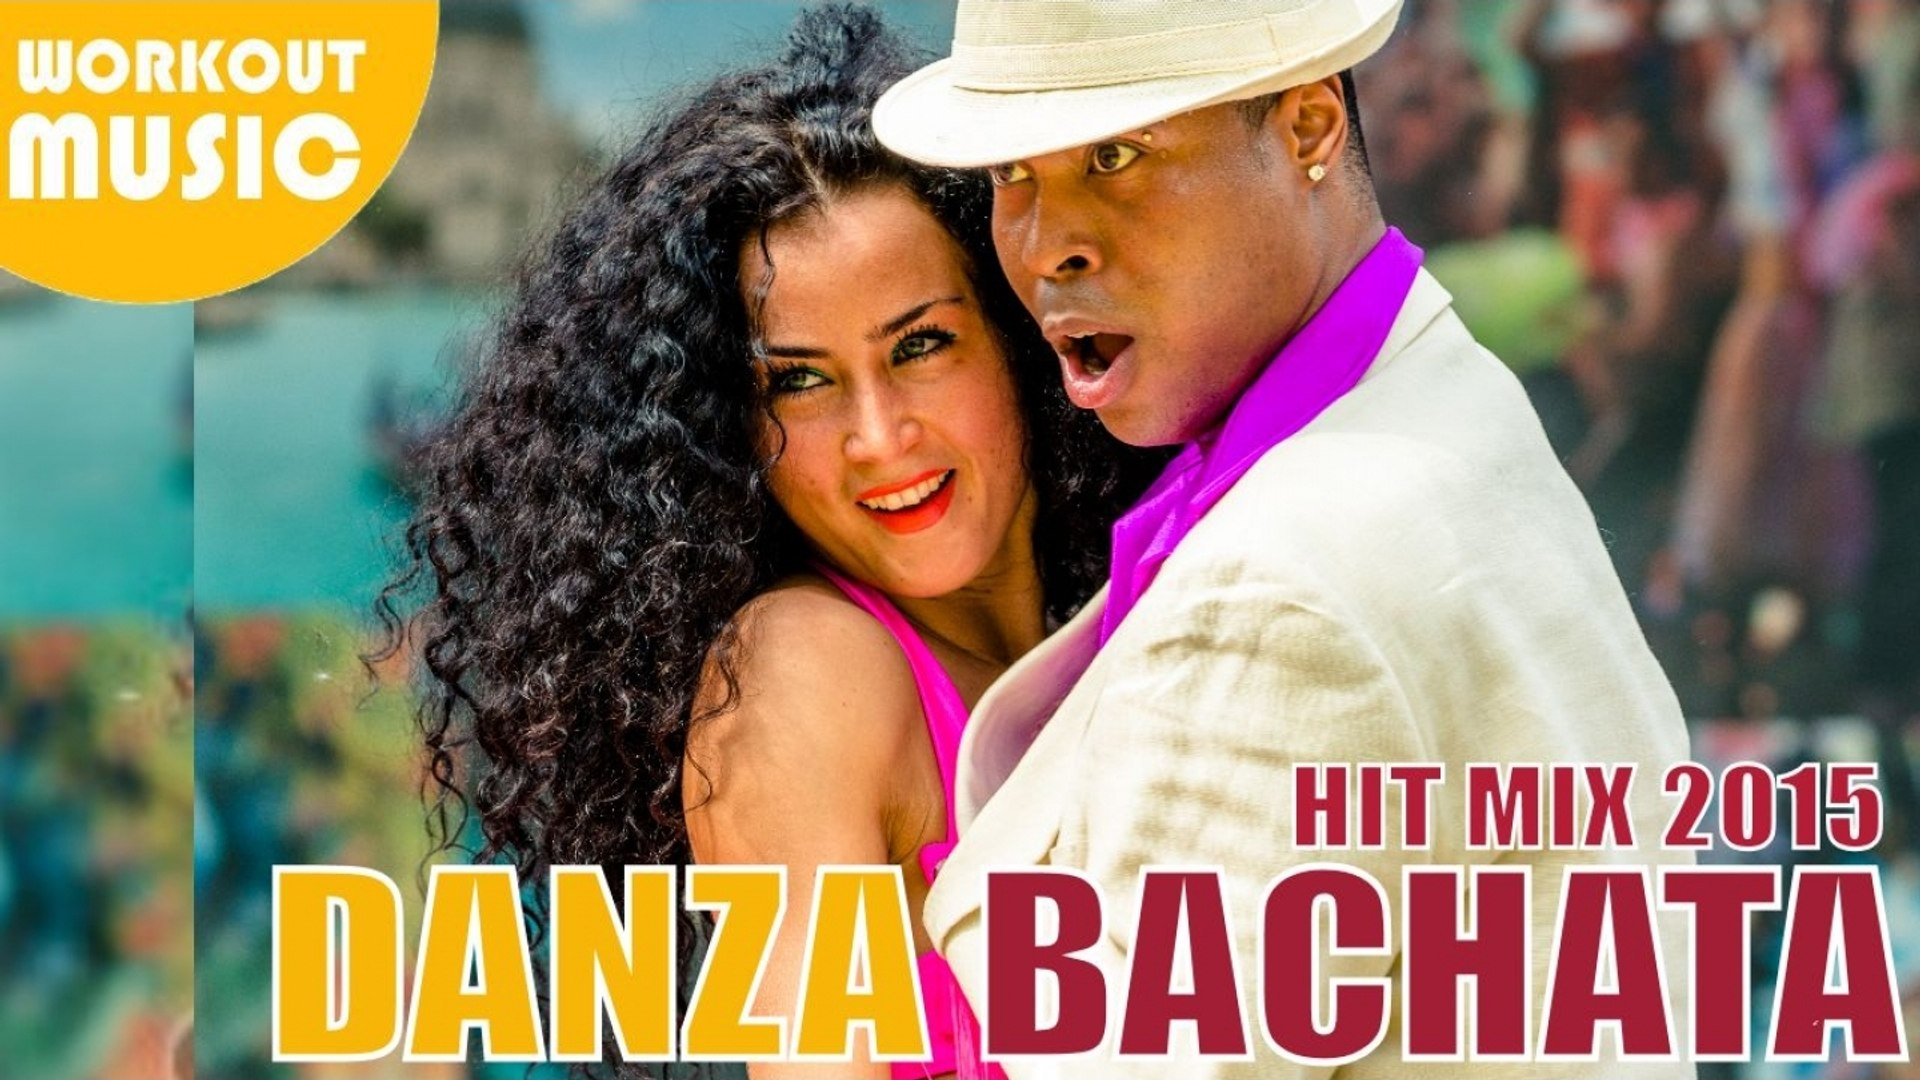 BACHATA 2015 HIT MIX VOL. 1 ► BEST BACHATA SONGS 2015 ► DANZA & ZUMBA 2015 WORKOUT